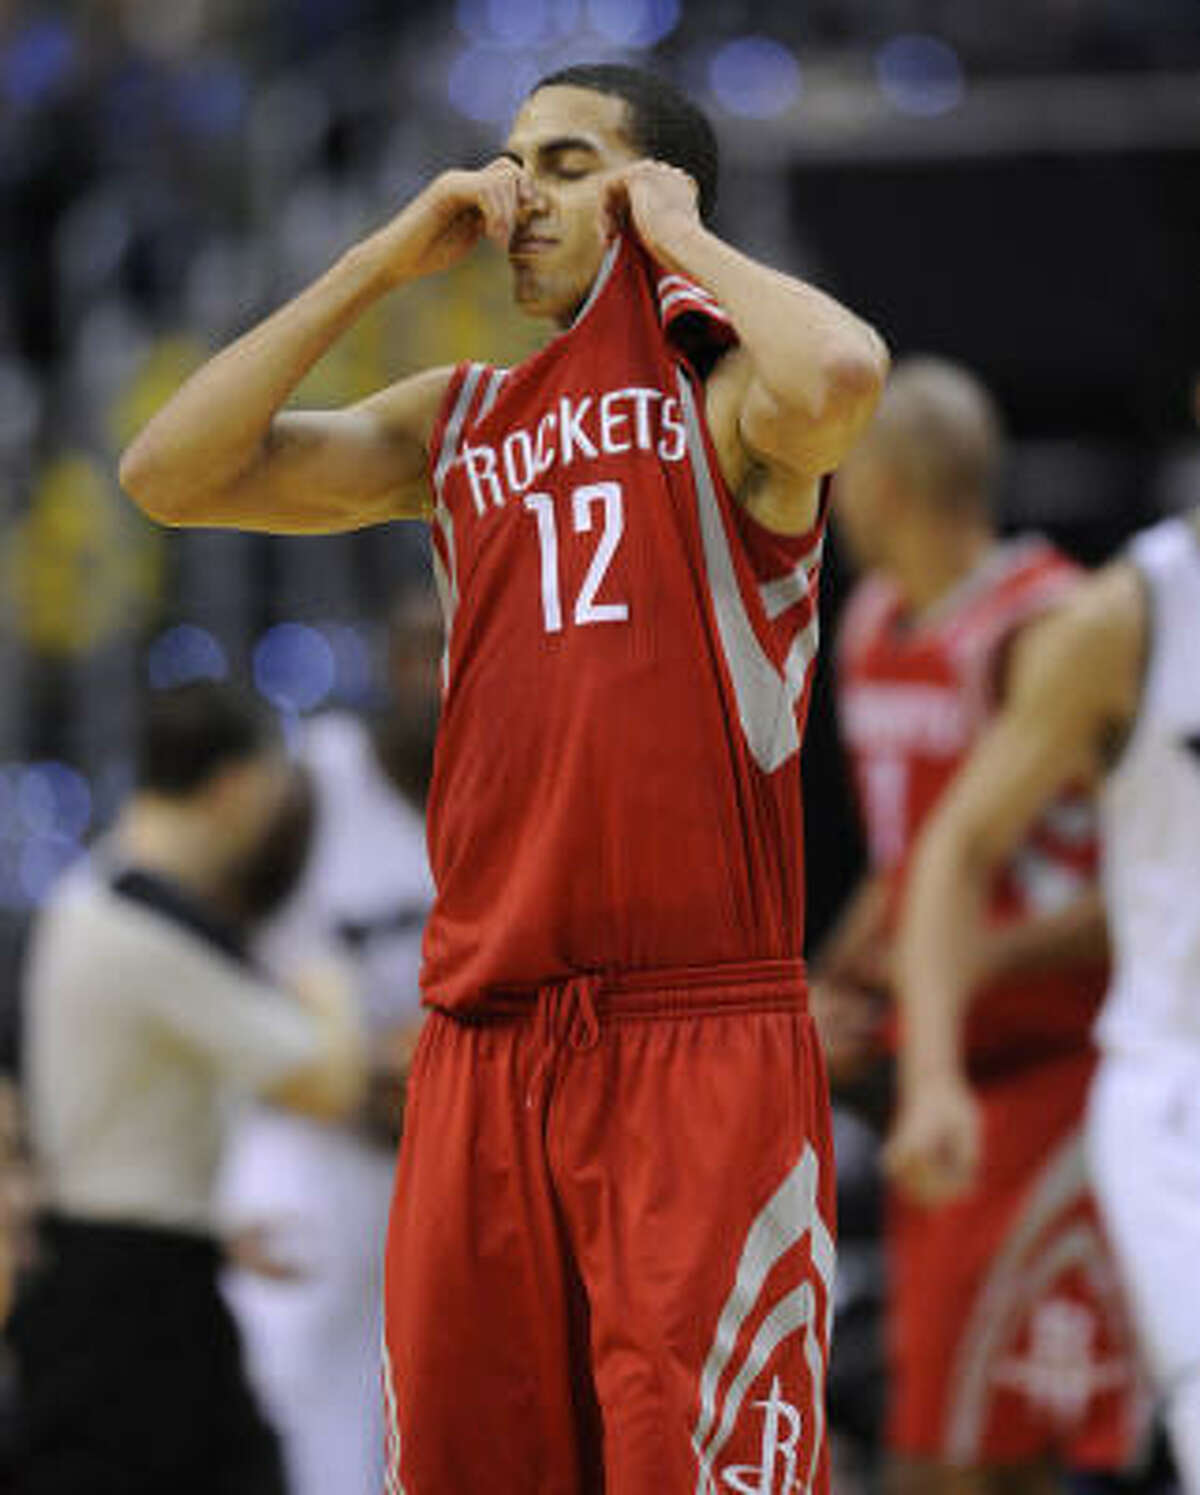 Rockets guard Kevin Martin shows his frustration after committing a turnover in the second half. He scored a game-high 31 points, but it wasn't enough to help the Rockets claim their first road victory.